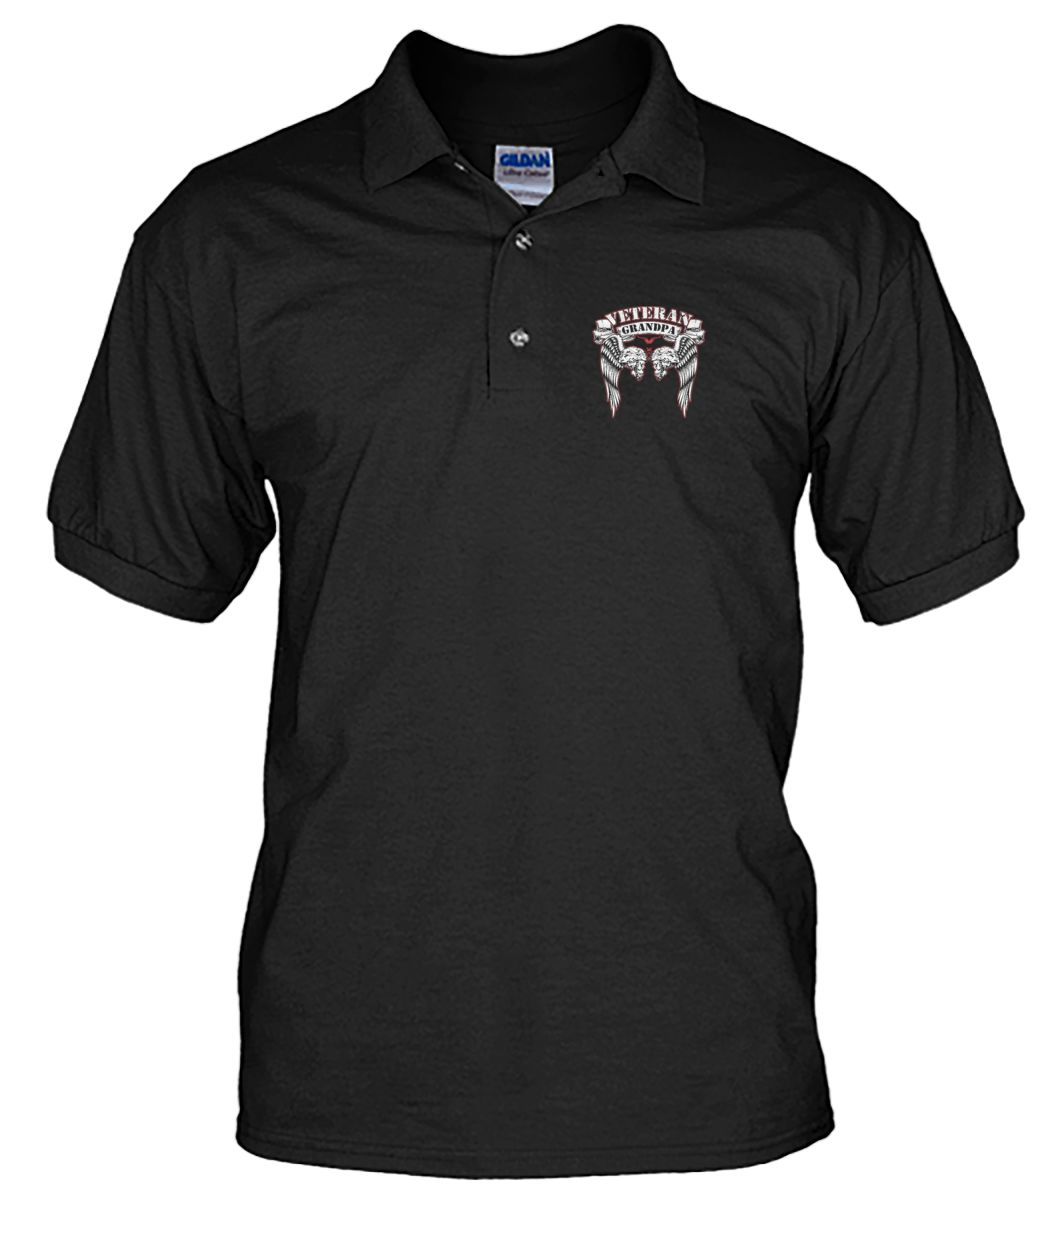 Veteran grandpa i risked my life men's polo shirt